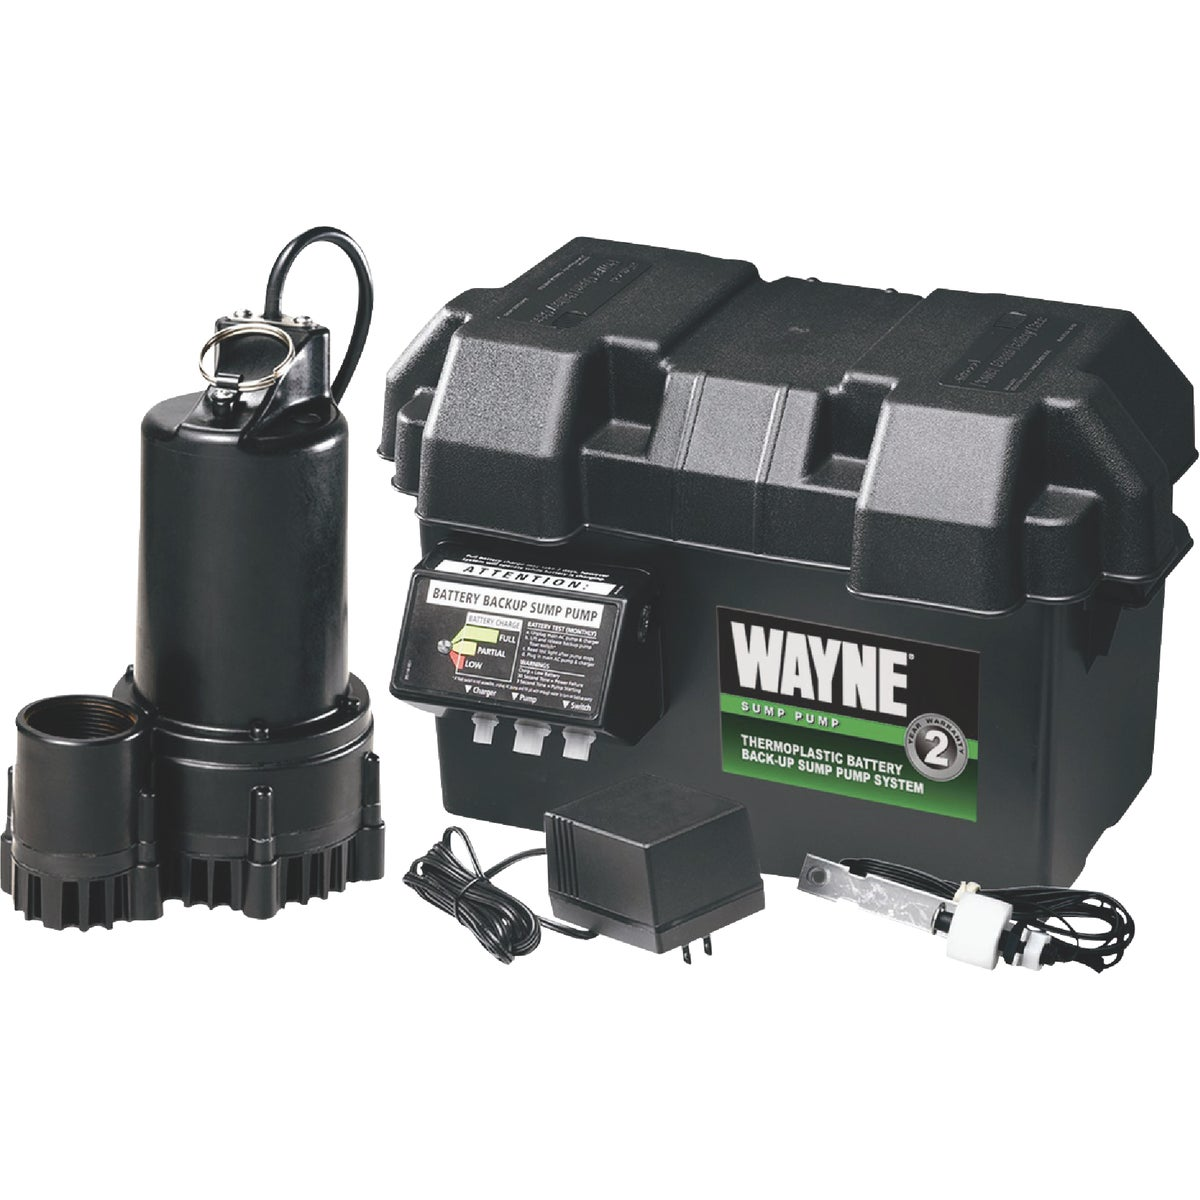 EMERG BACK-UP SUMP PUMP - ESP25 by Wayne Water Systems